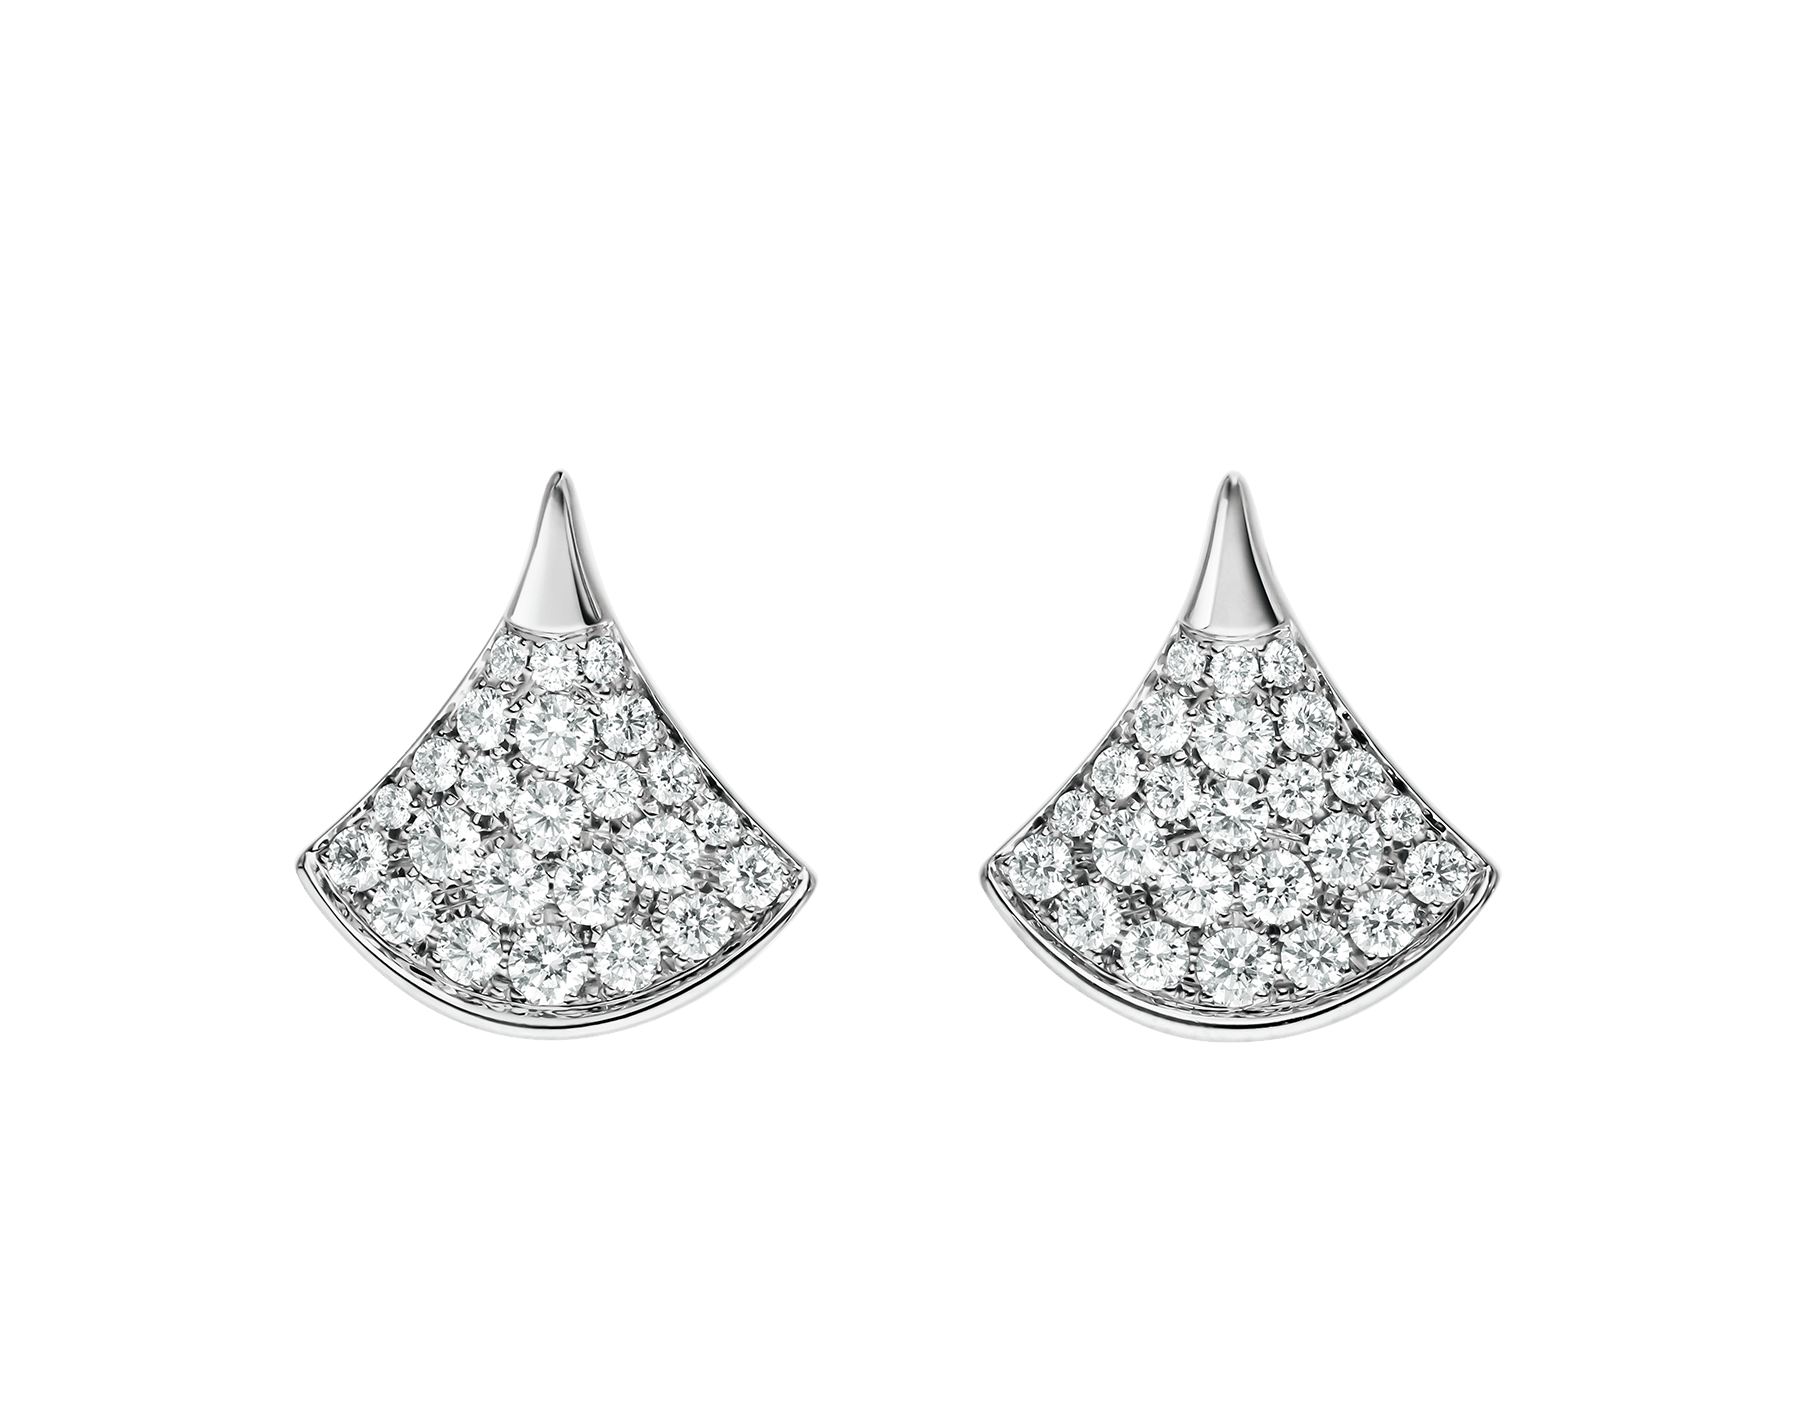 DIVAS' DREAM stud earrings in 18 kt white gold set with pavé diamonds. 352602 image 1